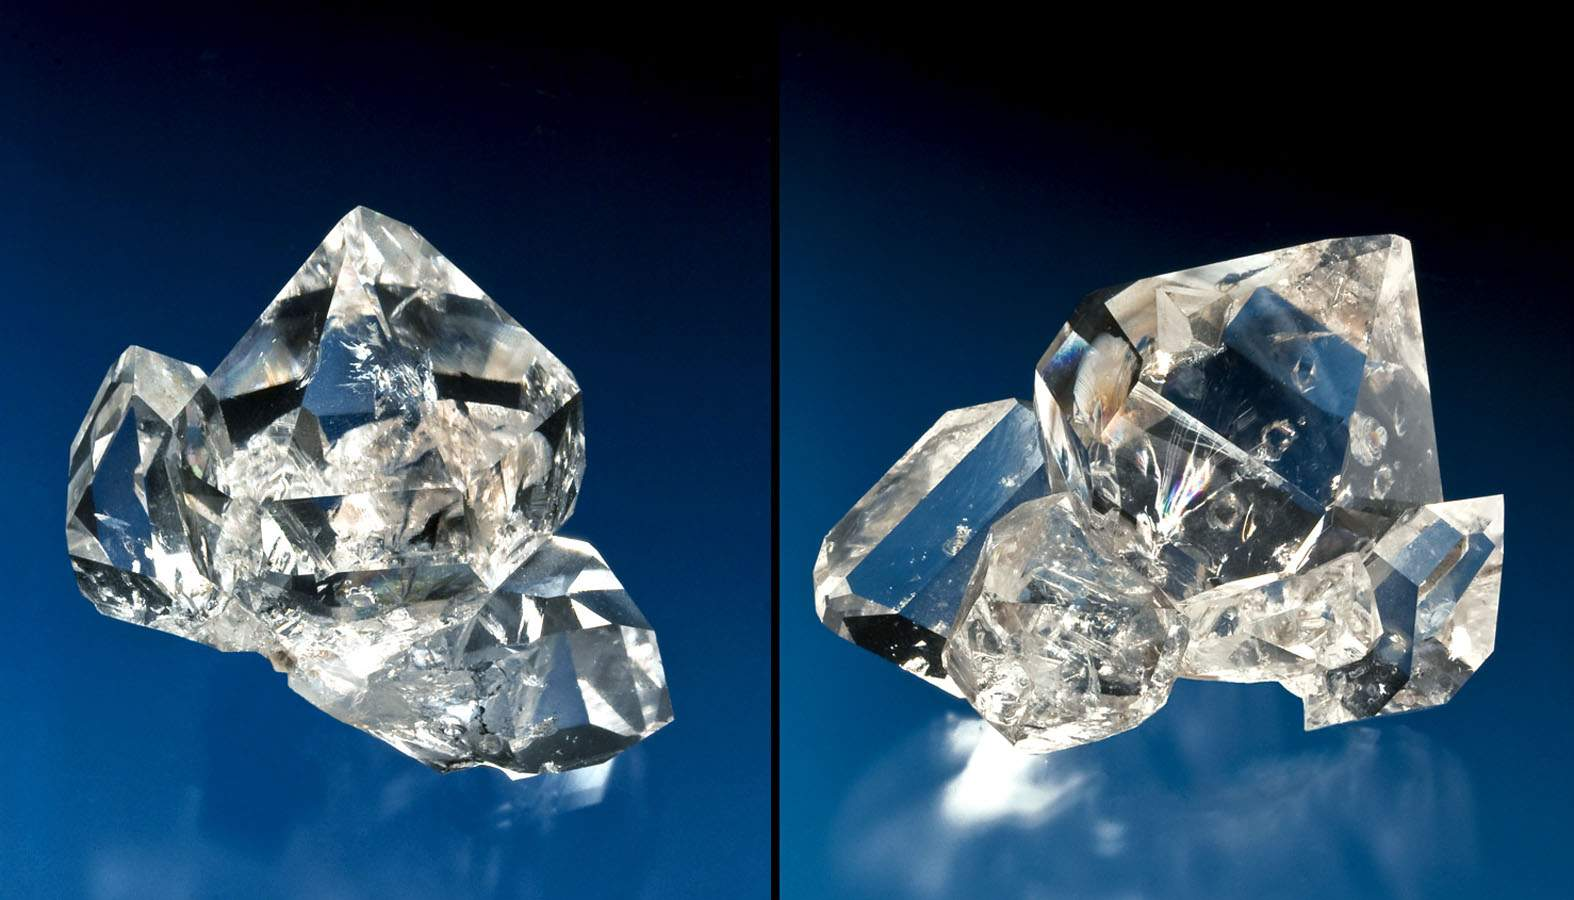 pictures diamond extraa discontinued double clear pakistan dt terminated represent quality extra quartz typical